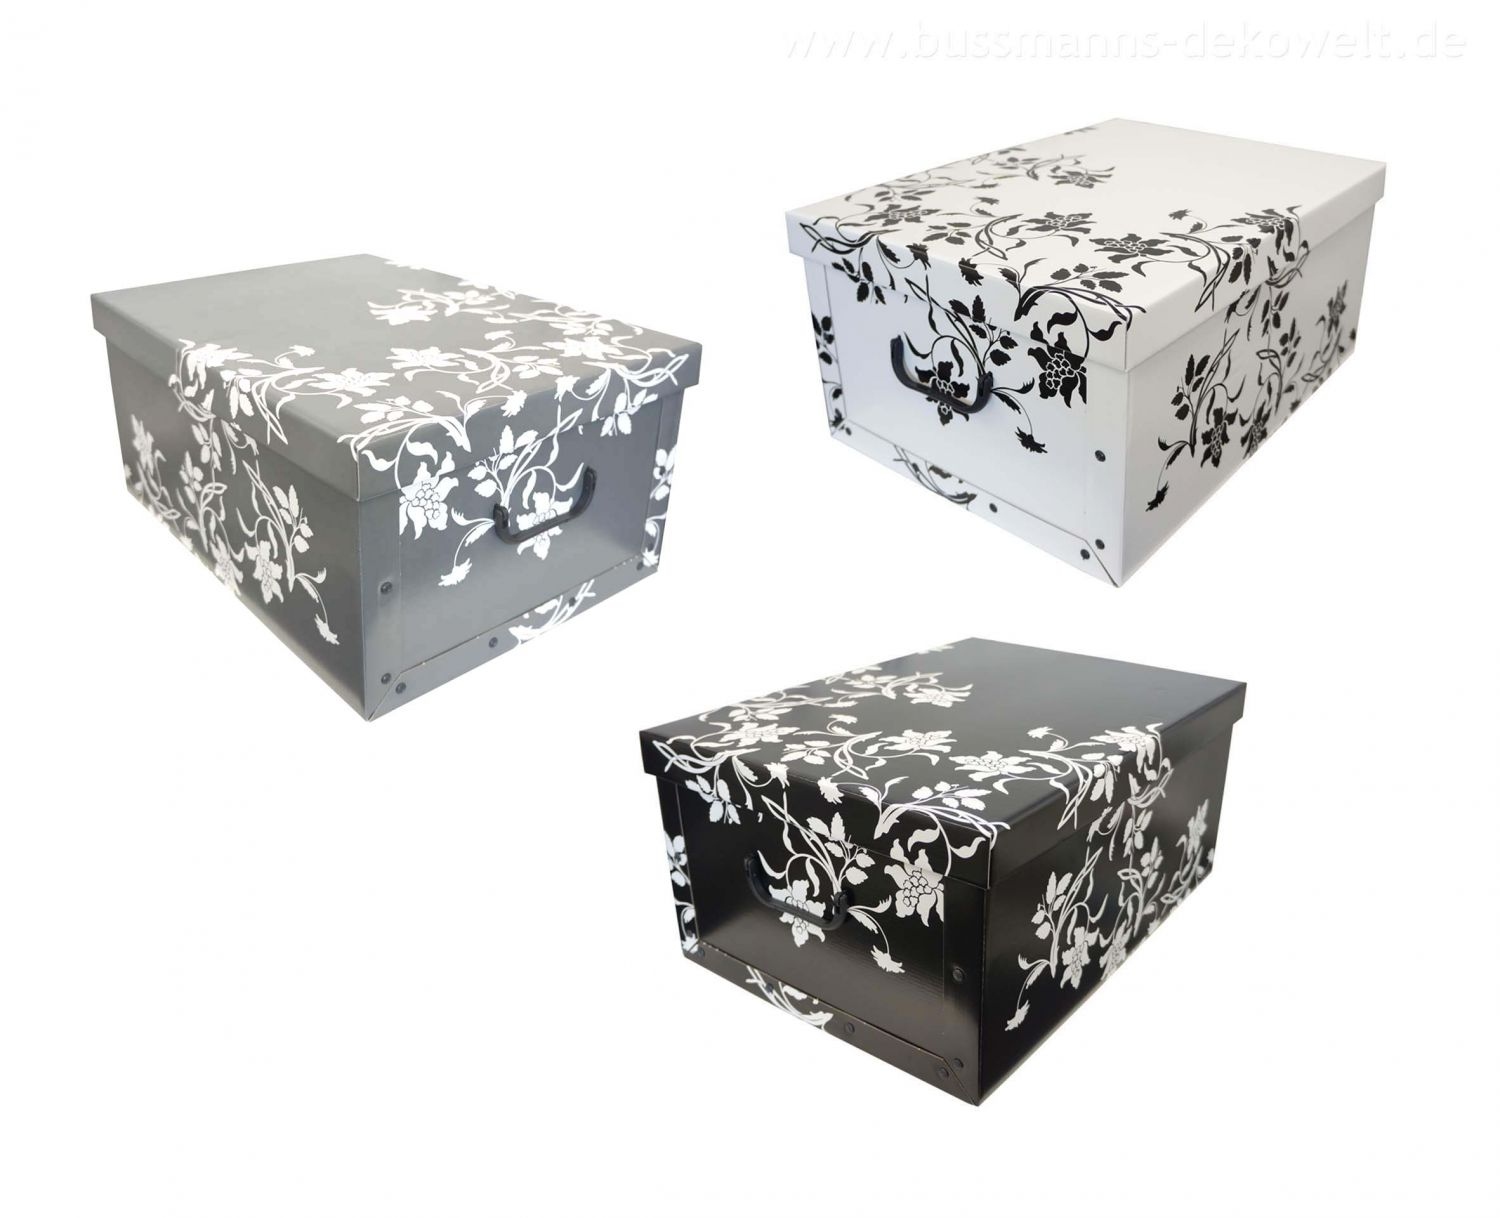 2x aufbewahrungs box mit deckel floralmuster kiste karton schachtel ebay. Black Bedroom Furniture Sets. Home Design Ideas